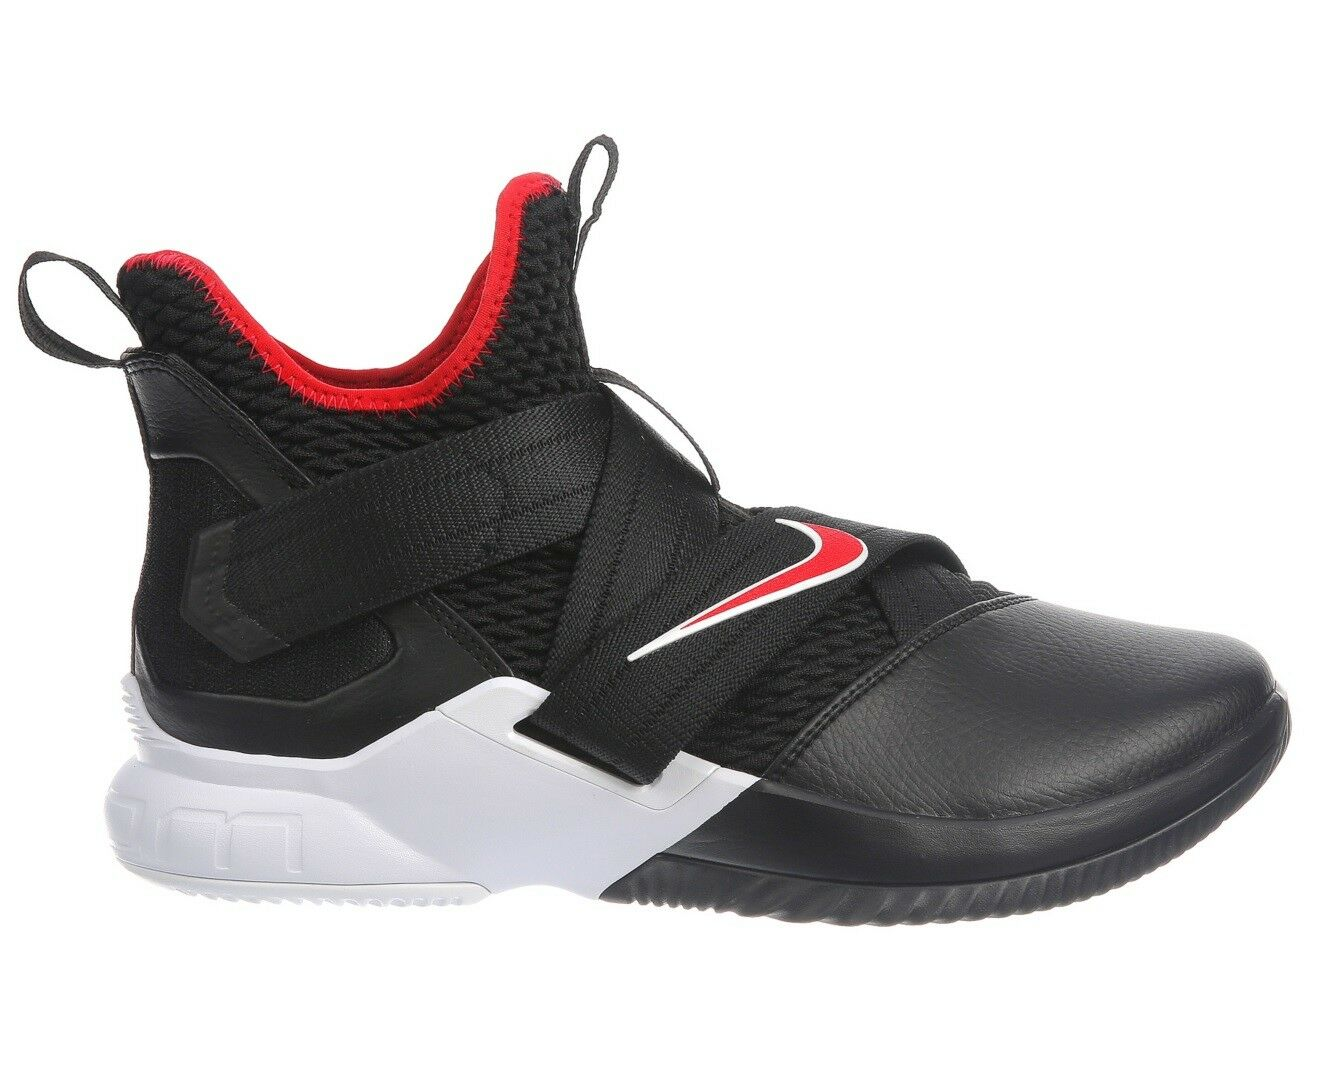 Nike Lebron Soldier 12 Bred Mens AO2609-001 Black Red Basketball Shoes Size 9